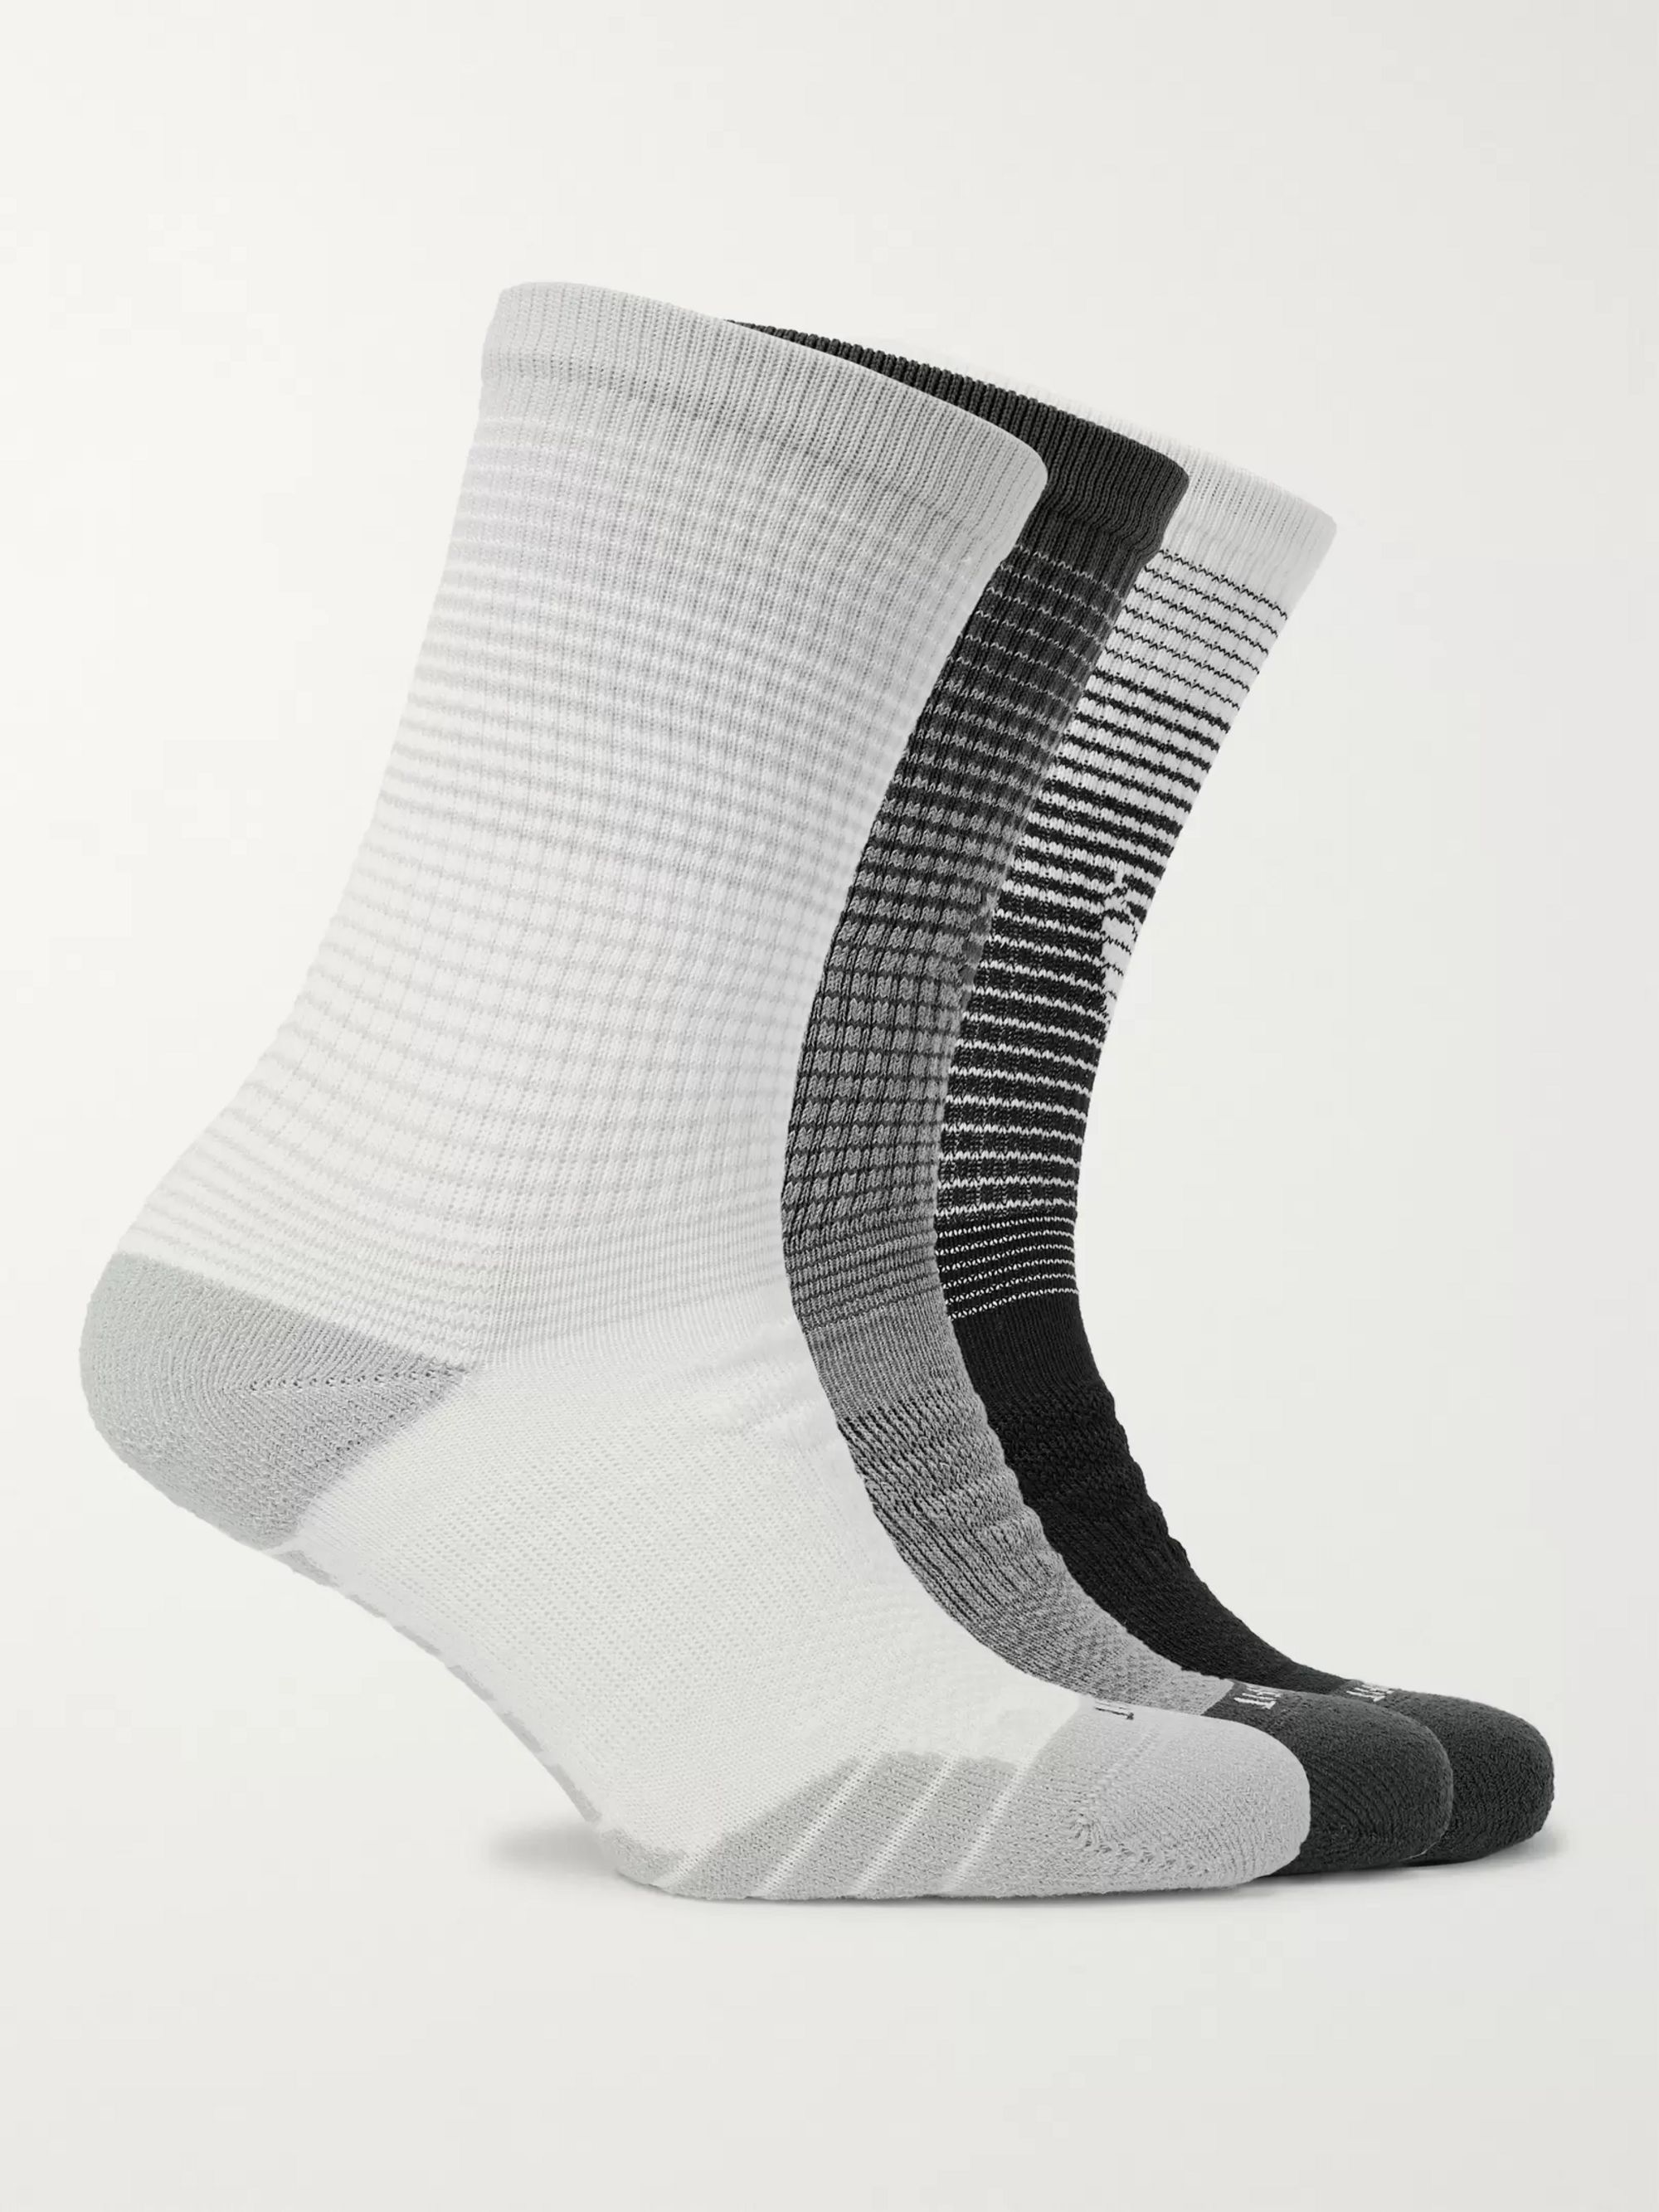 Nike Training Three-Pack Everyday Max Cushion Dri-FIT Crew Socks